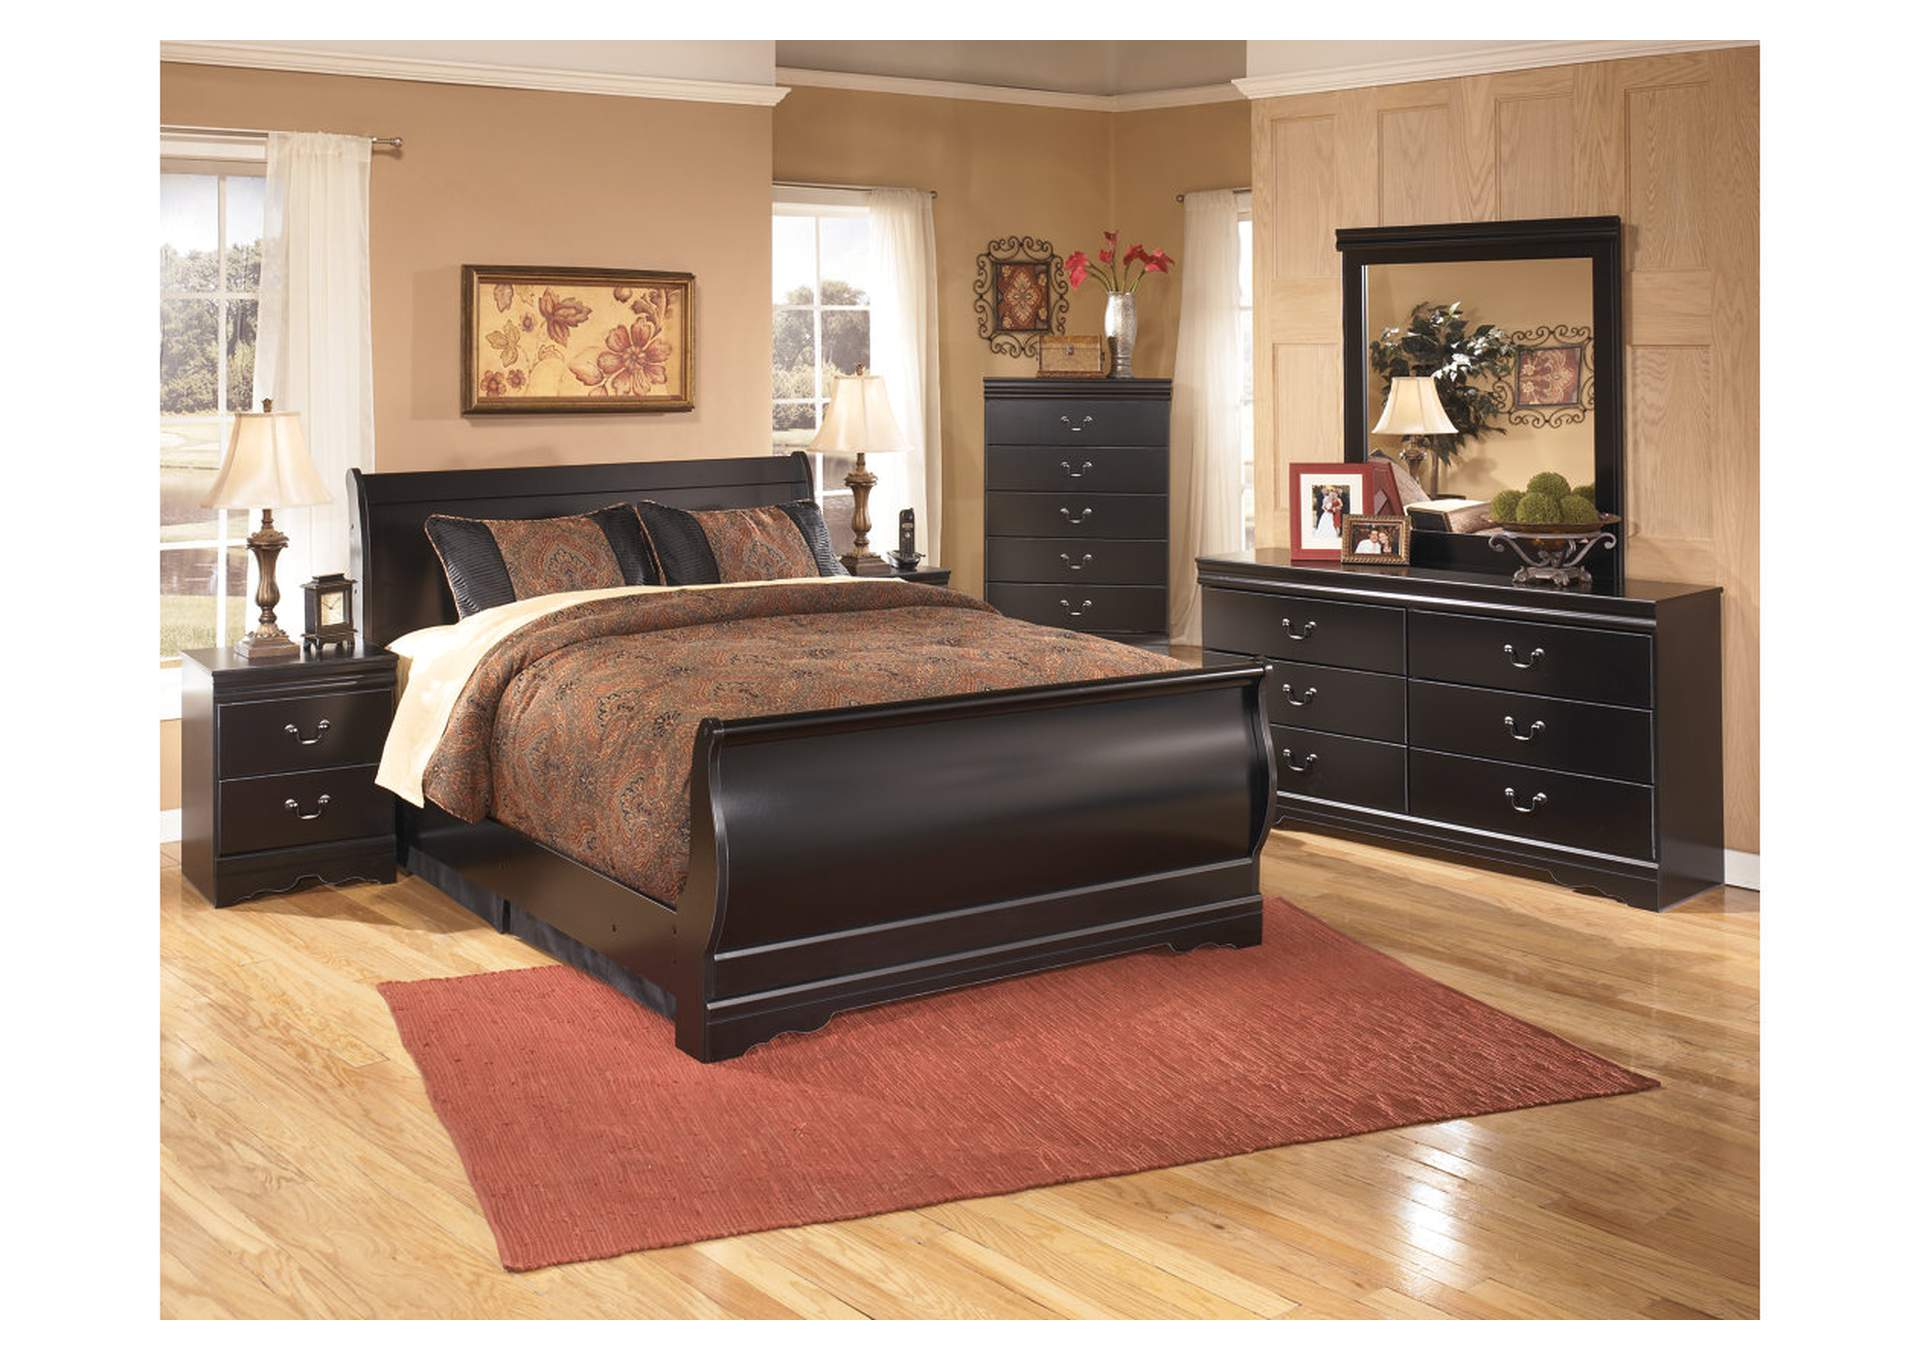 Huey Vineyard Queen Sleigh Bed,48 Hour Quick Ship